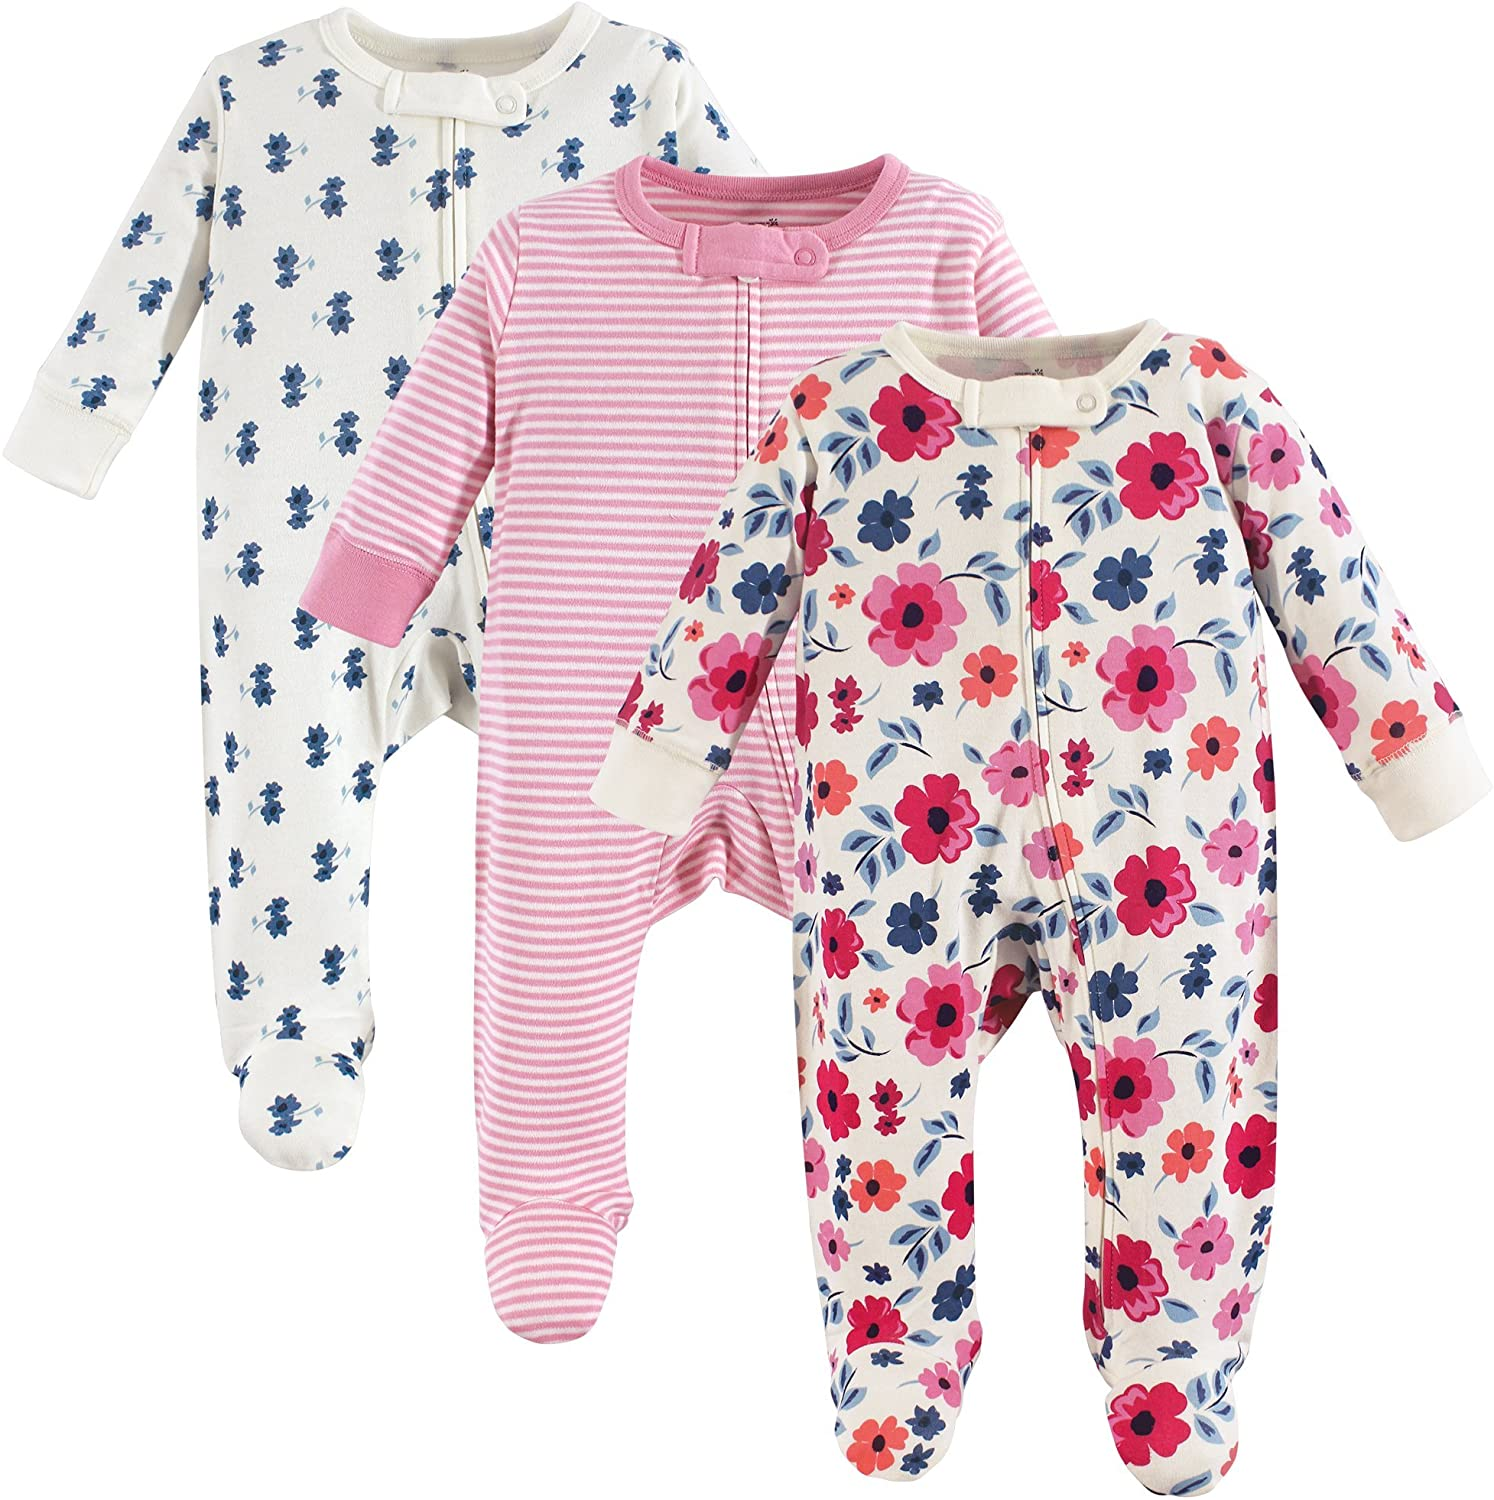 Touched by Nature unisex baby Organic Cotton and Play Sleepers, Garden Floral, 3-6 Months US